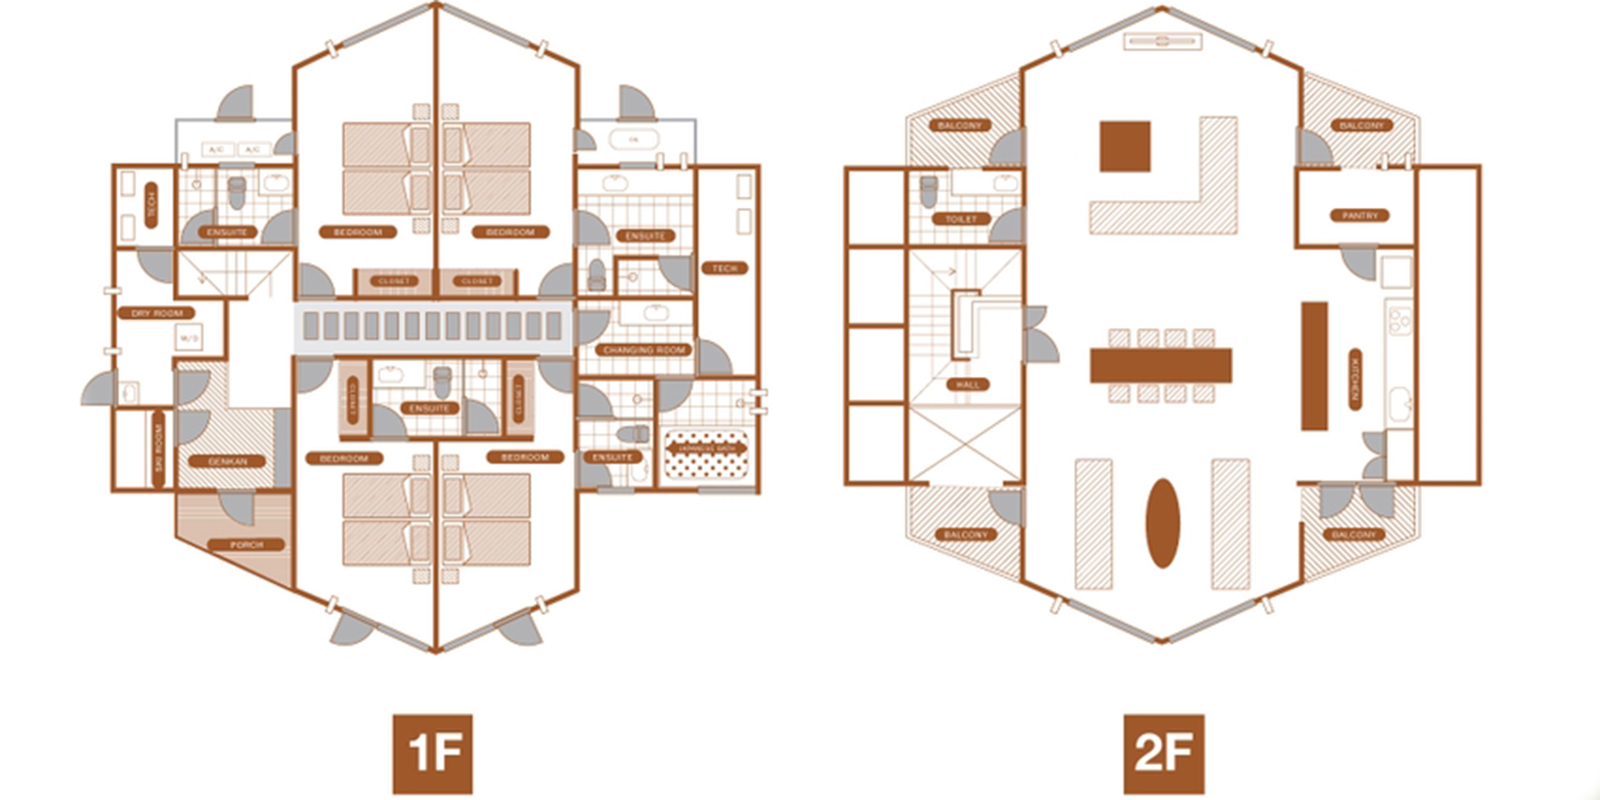 The Orchards Niseko Sawara Floor Plan | St Moritz, Niseko